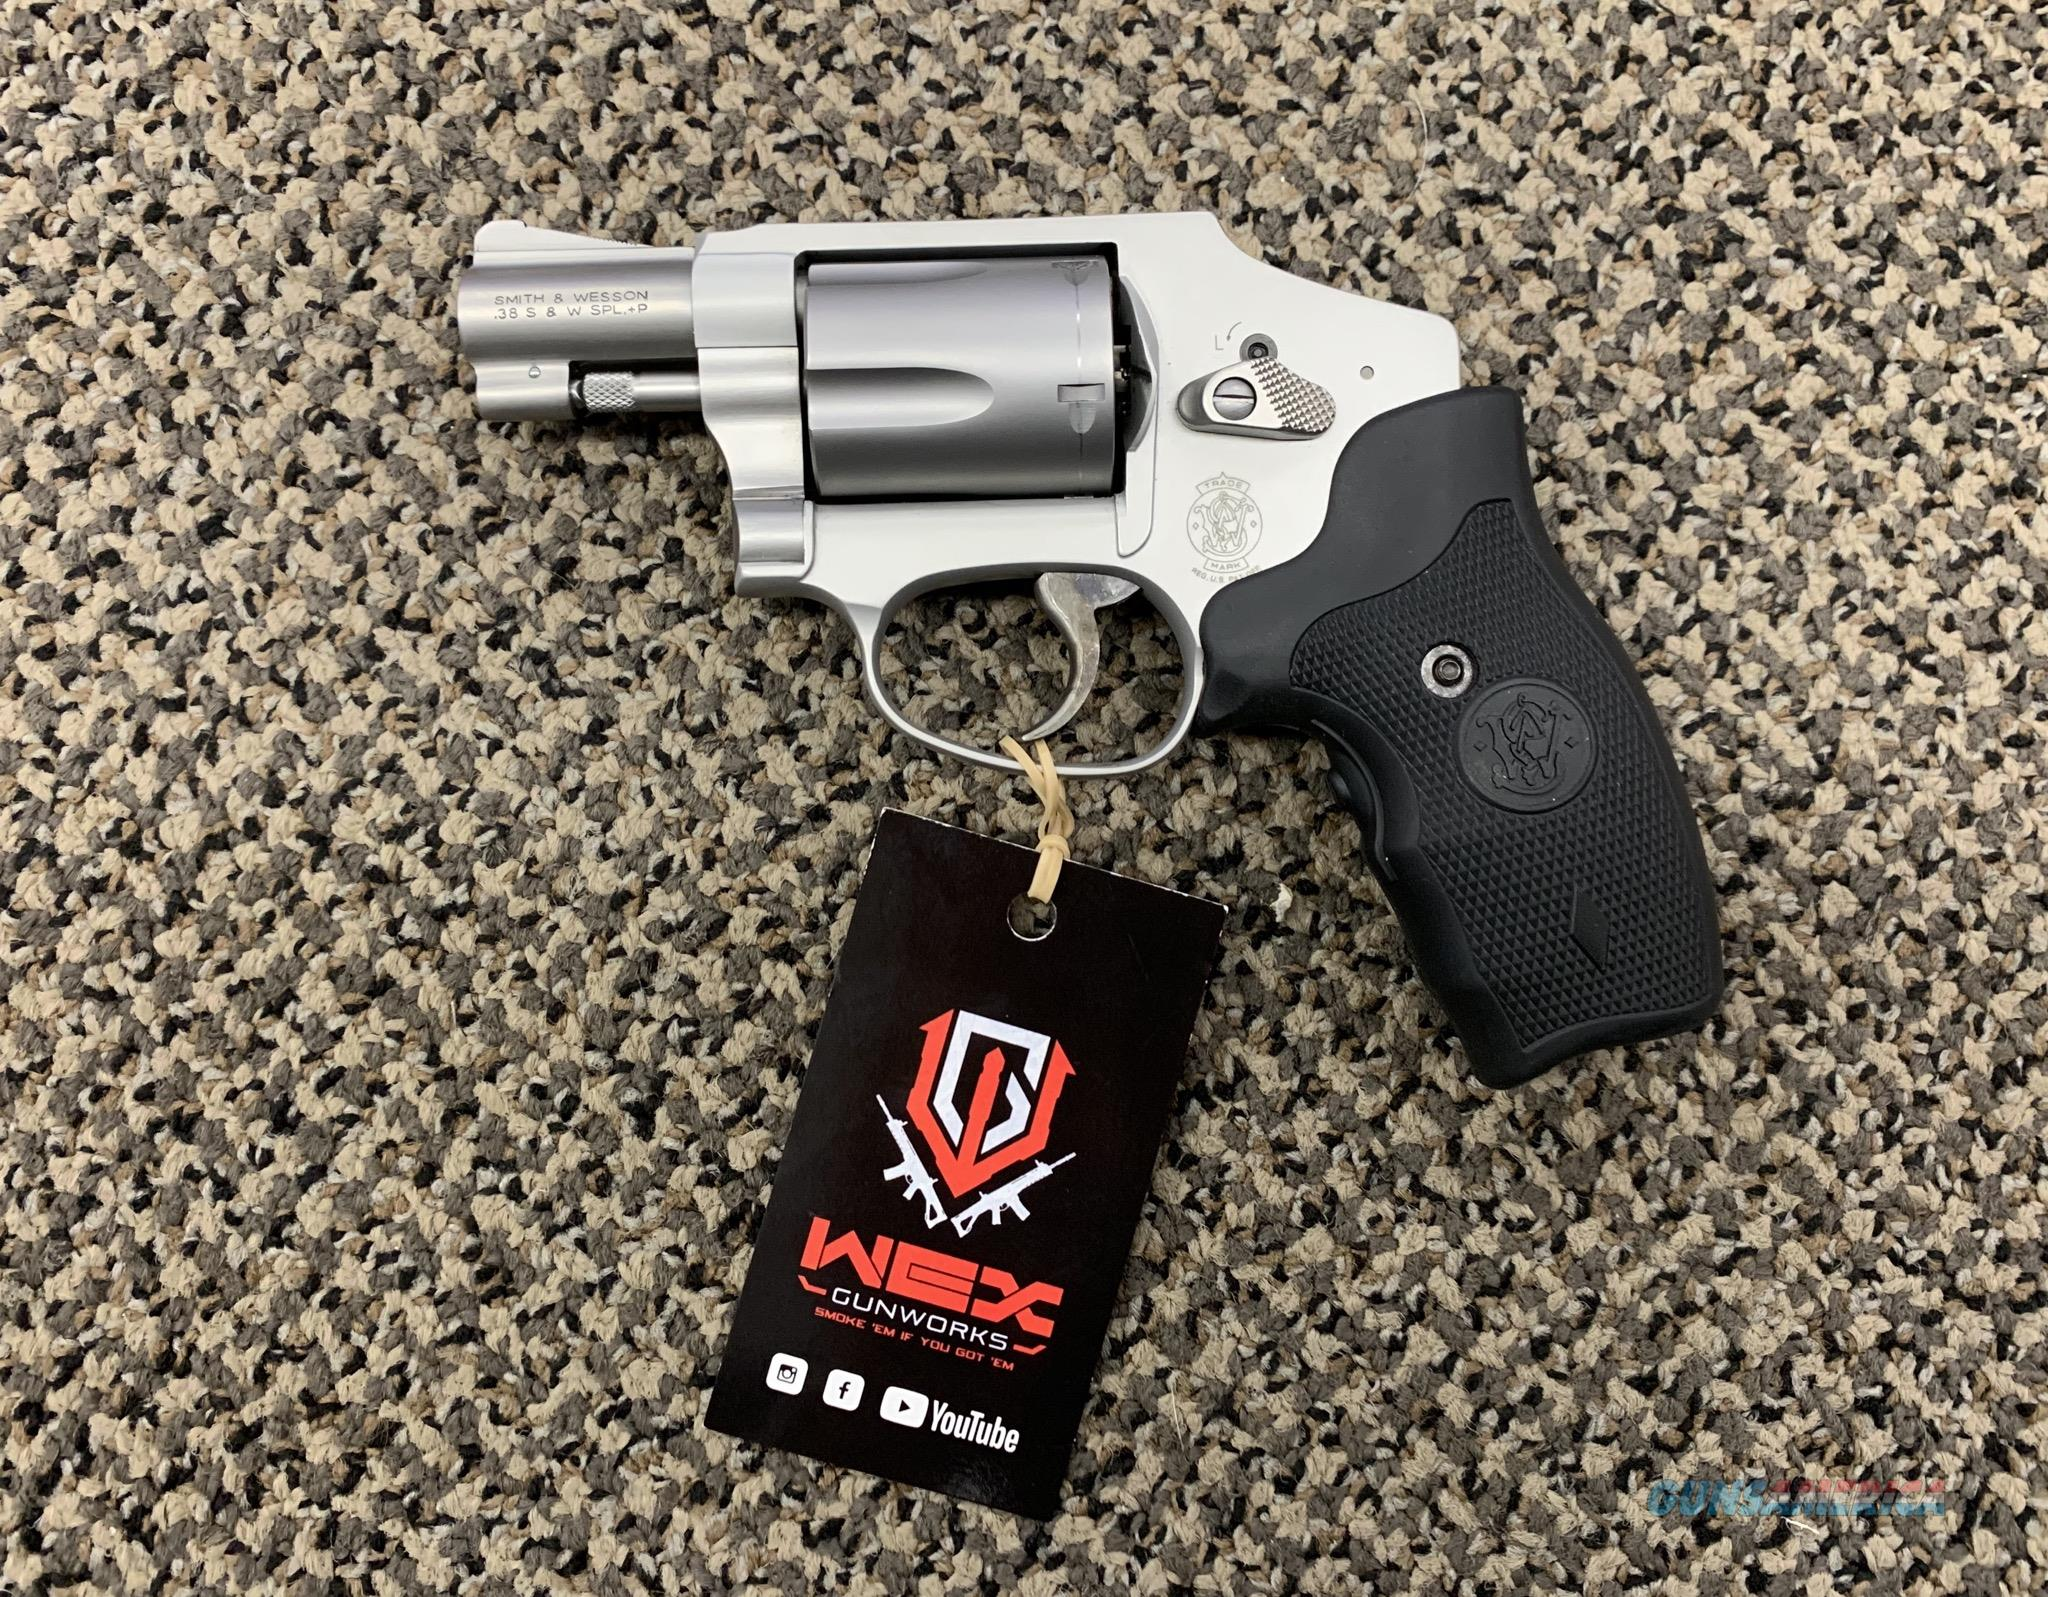 S&W MODEL 642-2 .38 SPECIAL WITH CRIMSON TRACE LASER GRIPS  Guns > Pistols > Smith & Wesson Revolvers > Small Frame ( J )